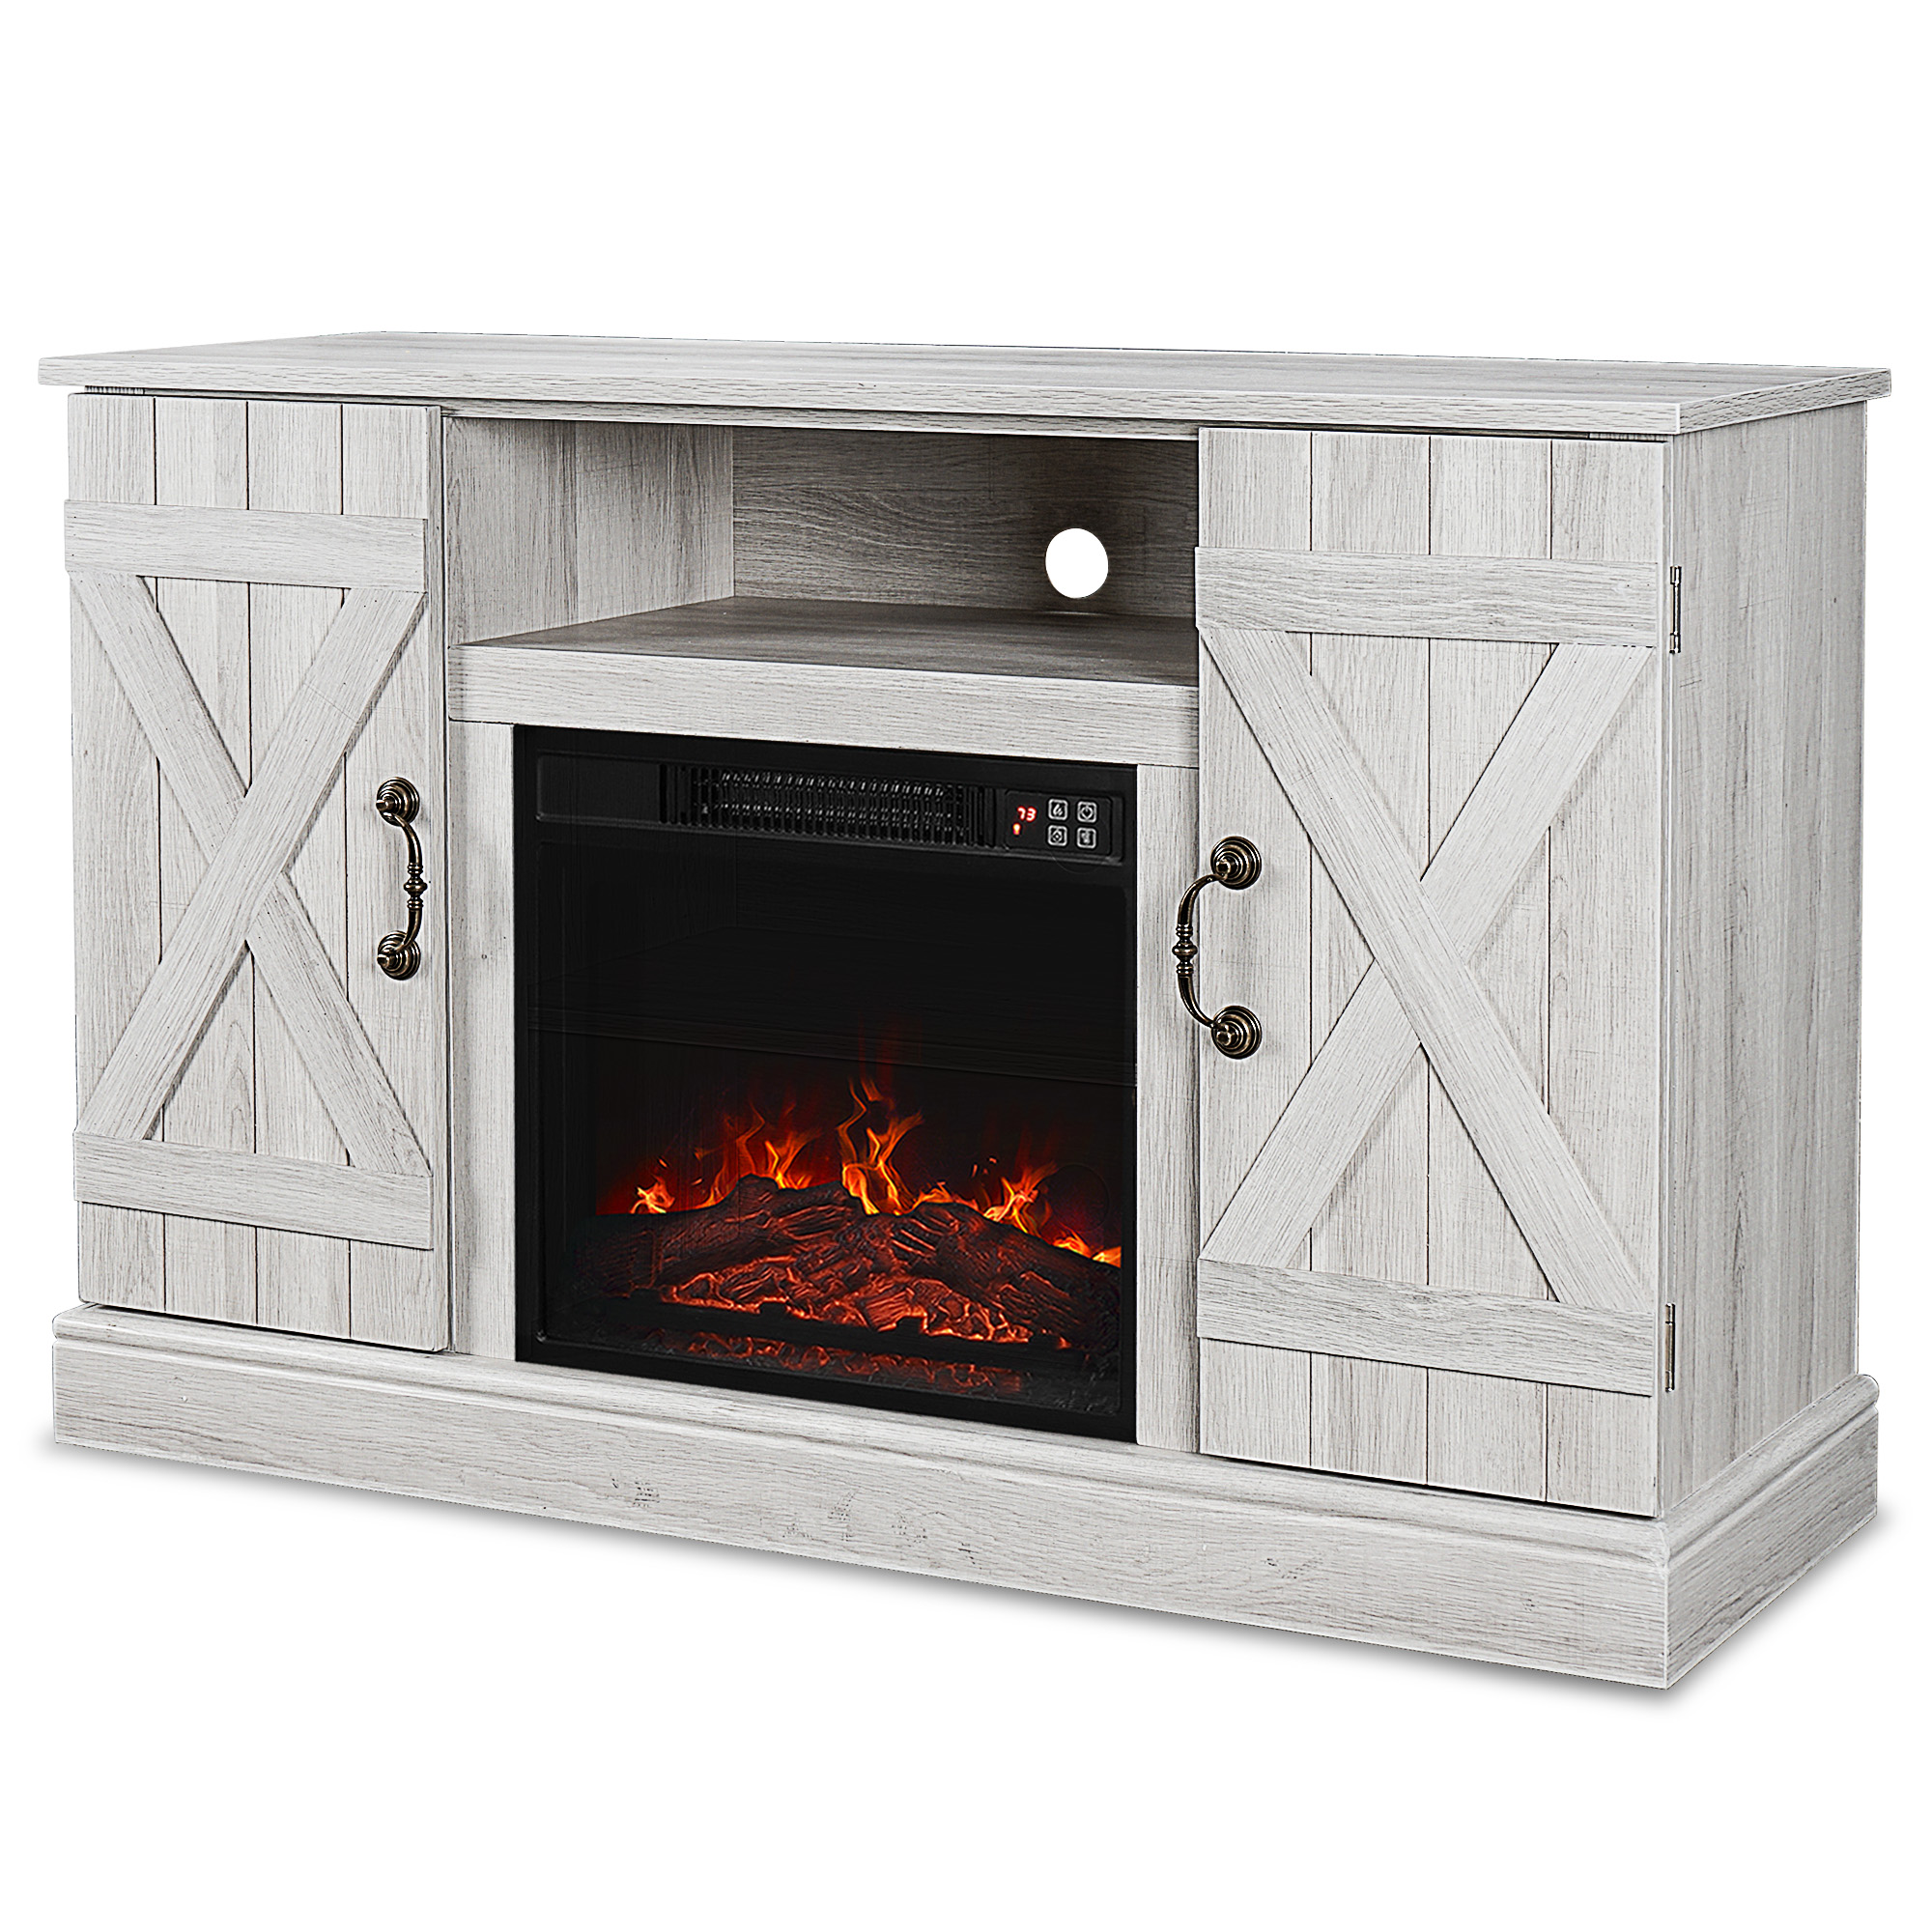 """46"""" Rustic Wood Sargent Oak TV Stand Fireplace Heater ..."""